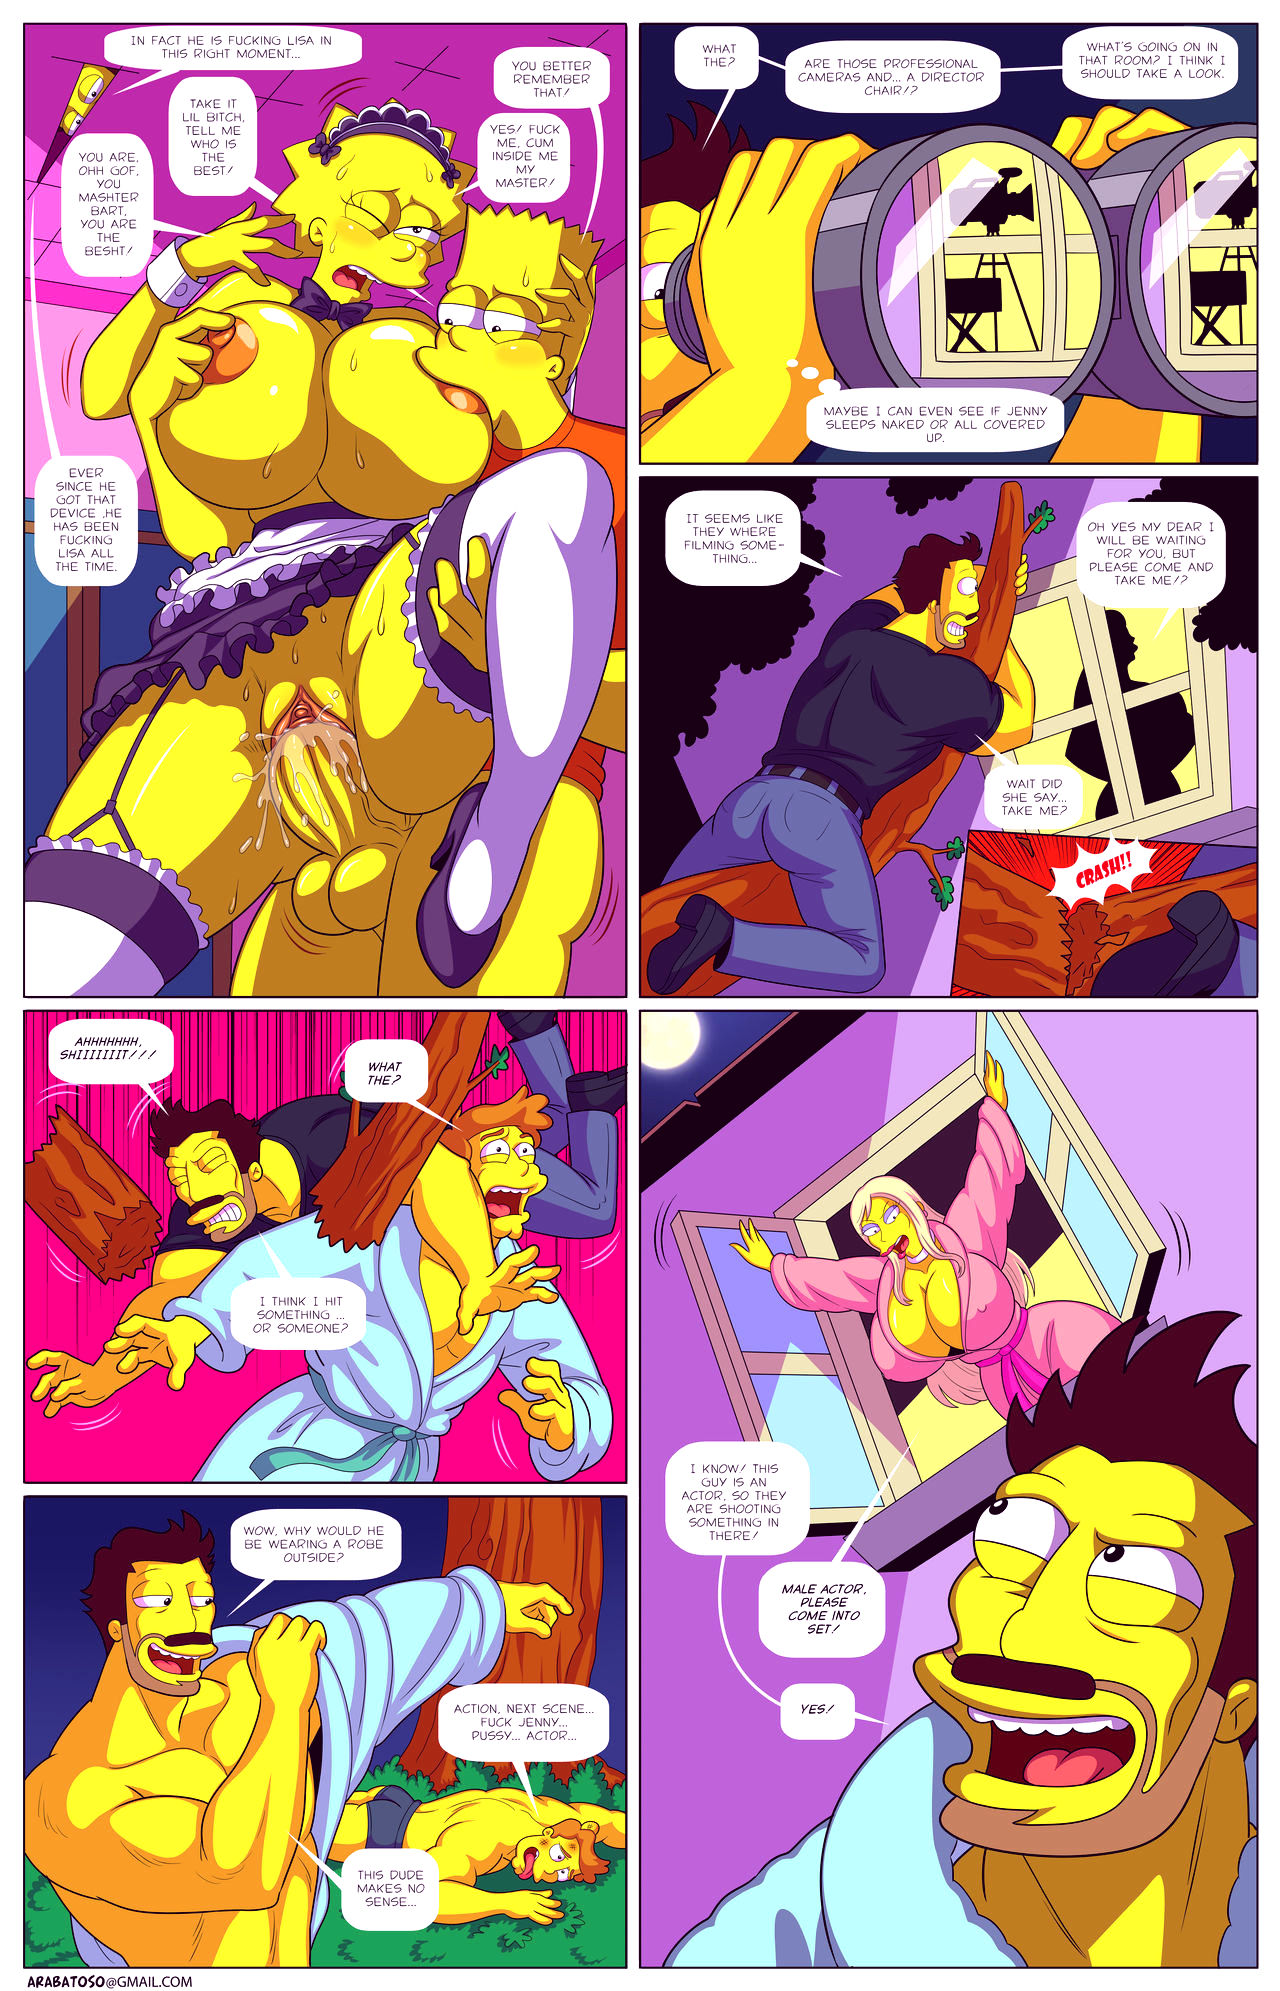 Darrens adventure or welcome to springfield porn comic picture 42